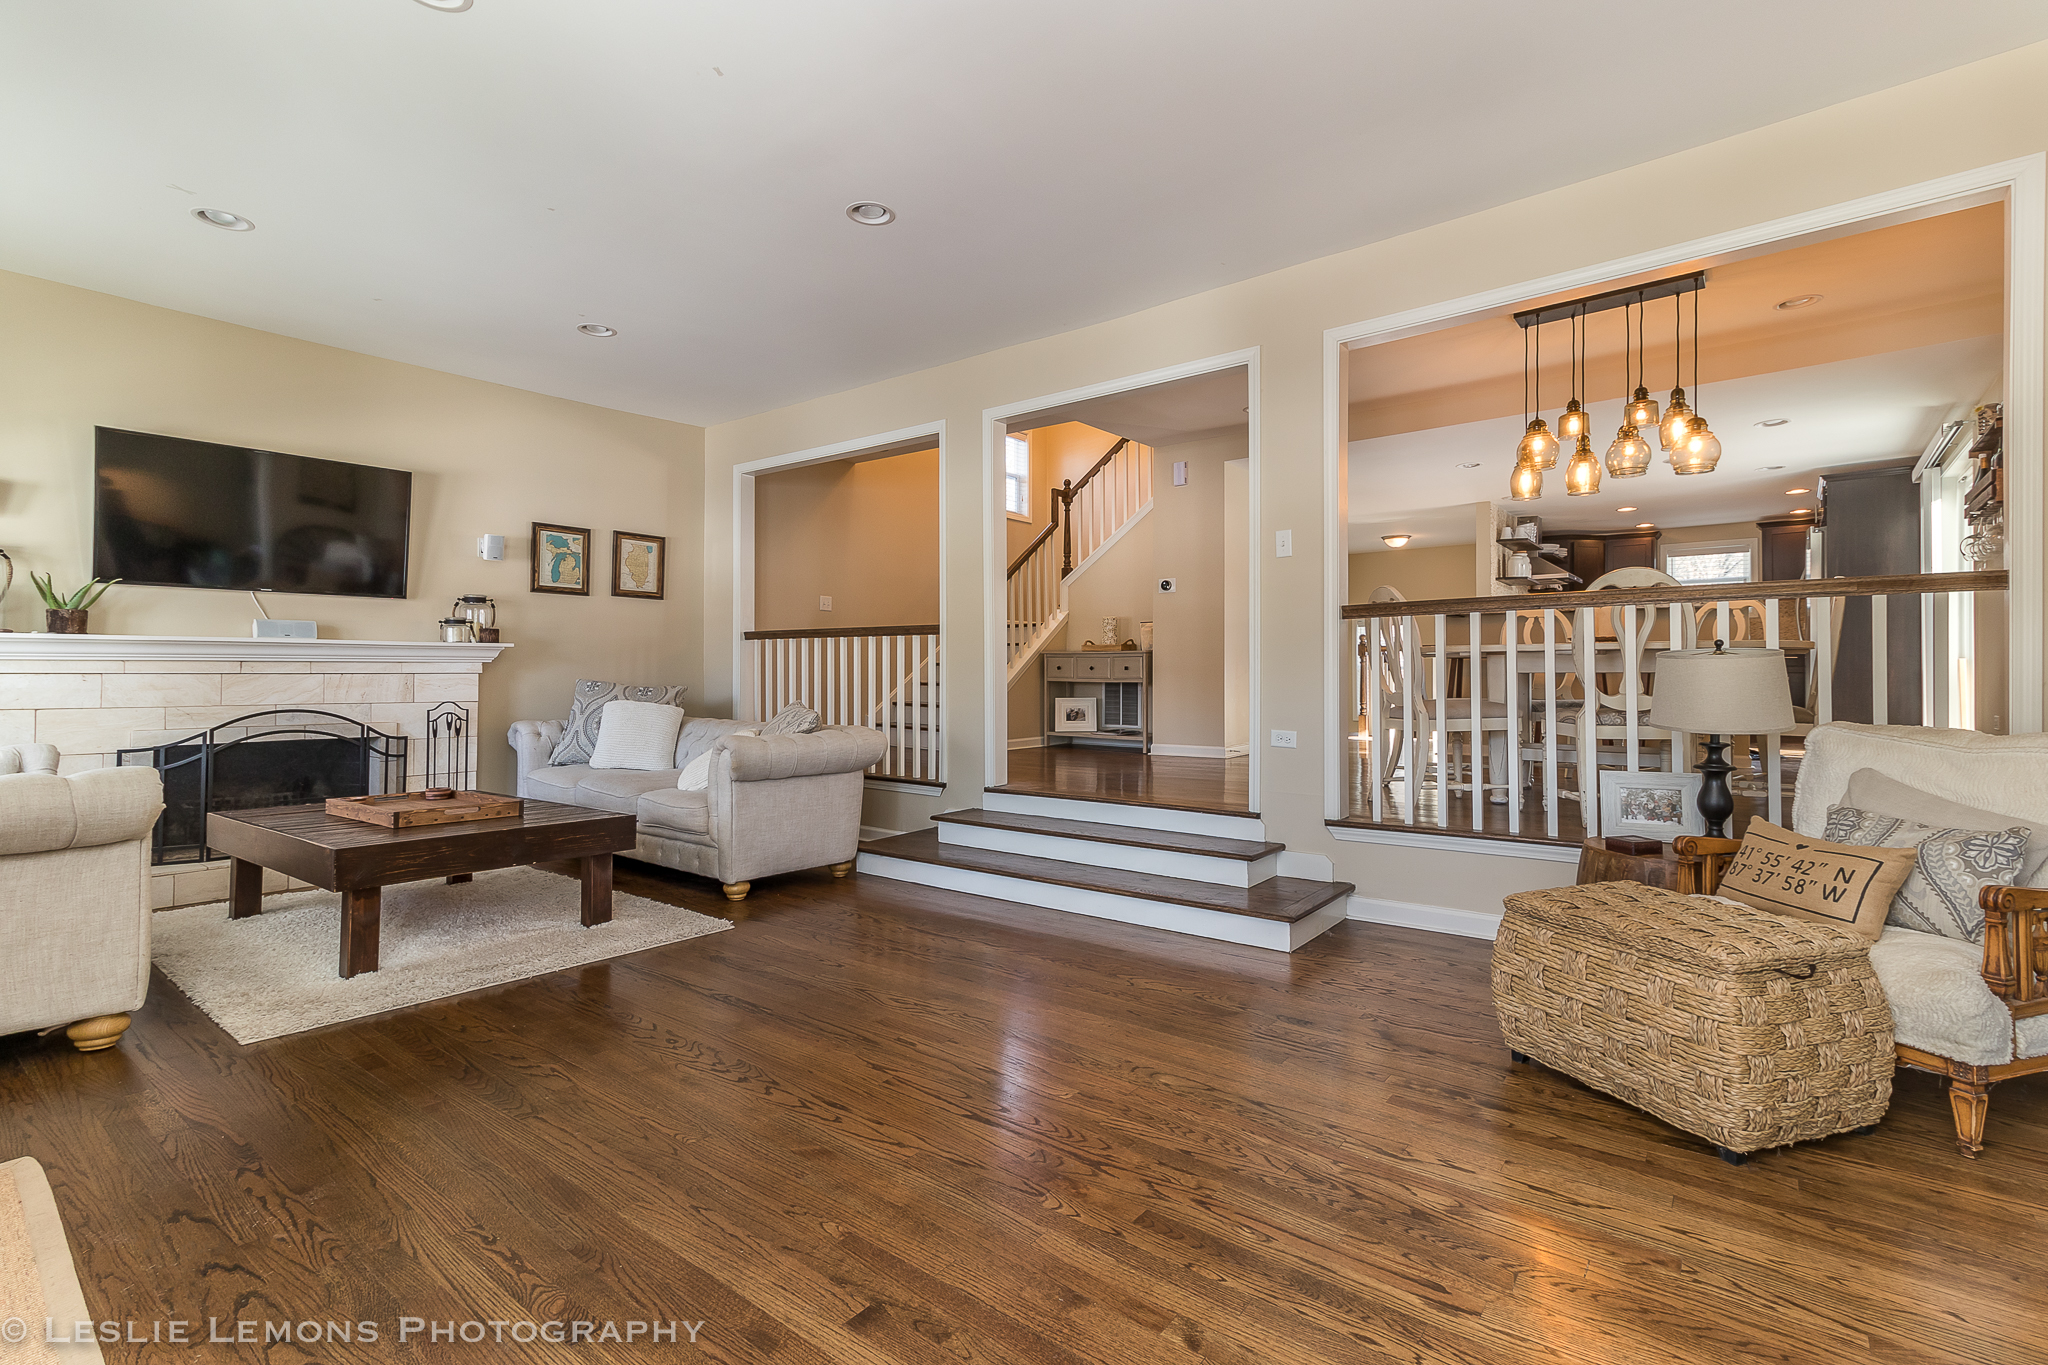 Real Estate Photo Family Room